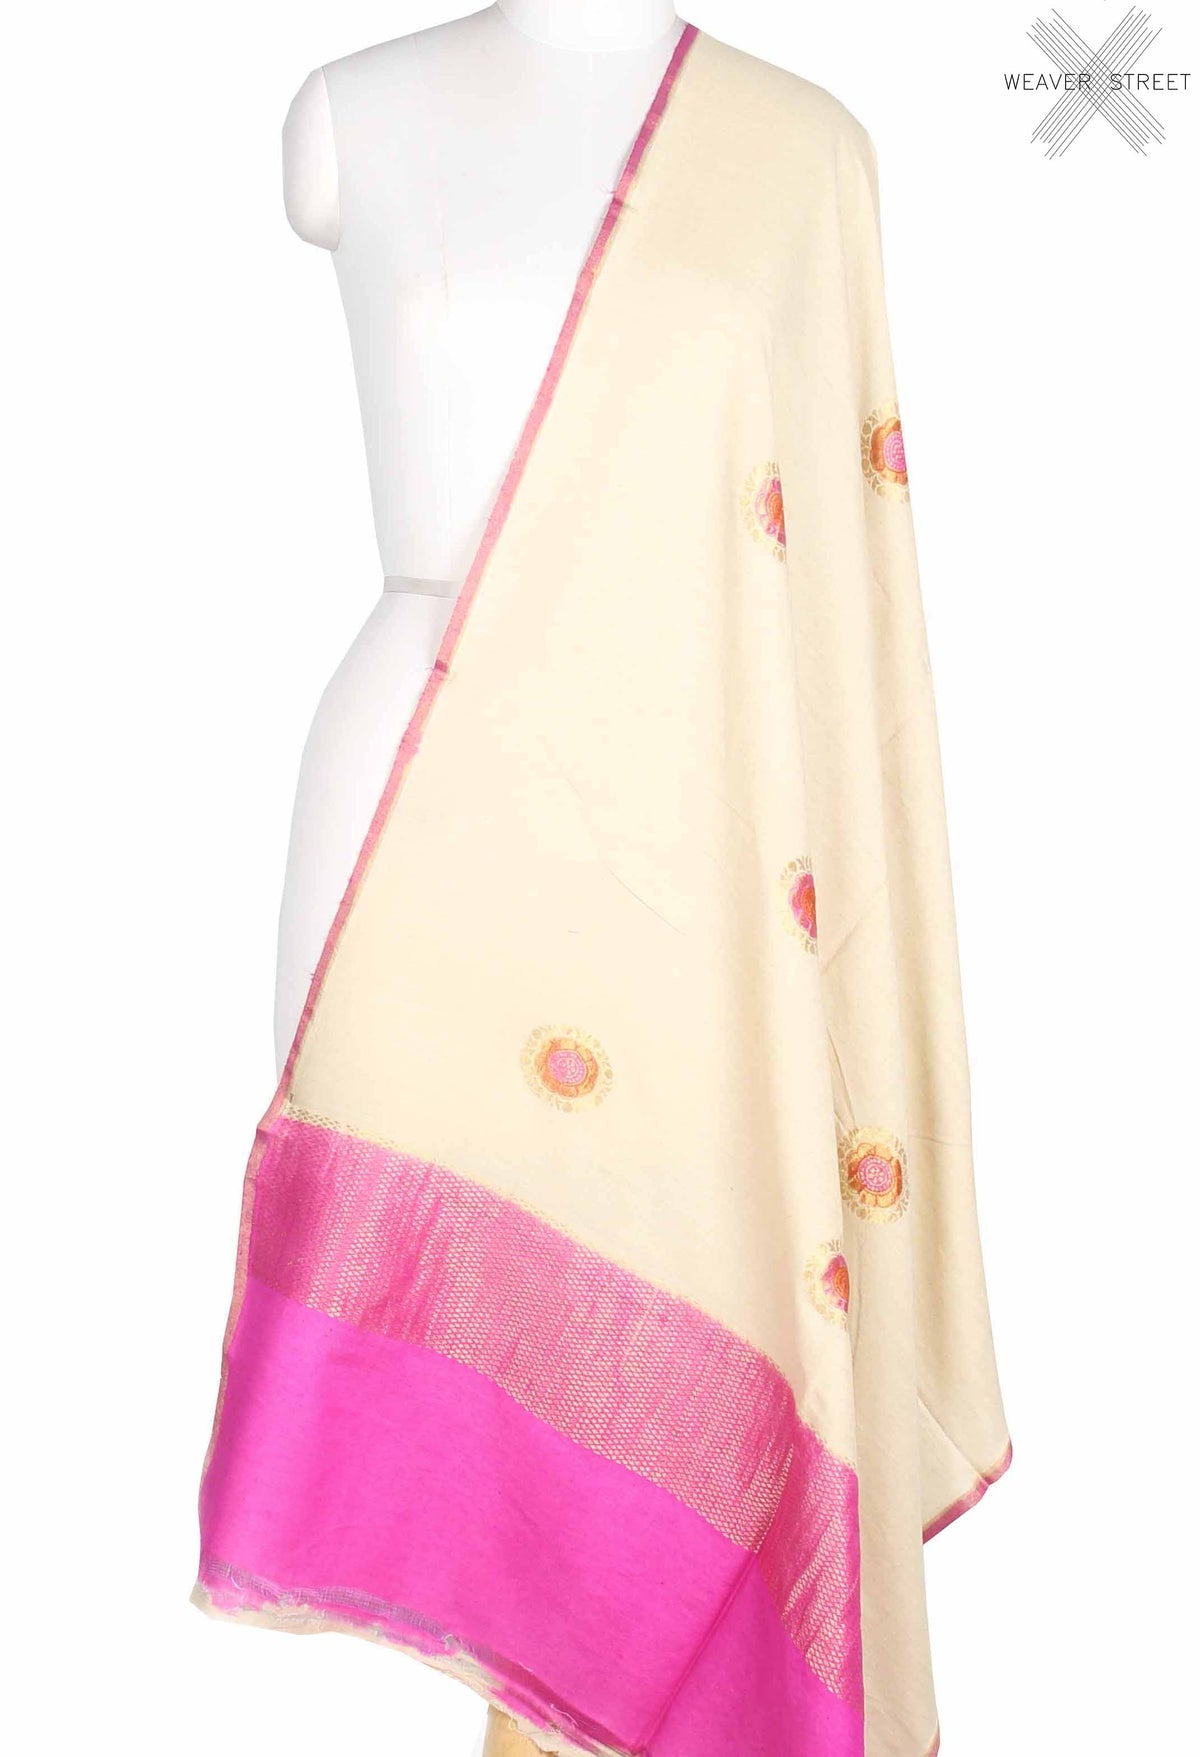 Off White Muga Silk Handwoven Banarasi Dupatta with round motifs (1) main